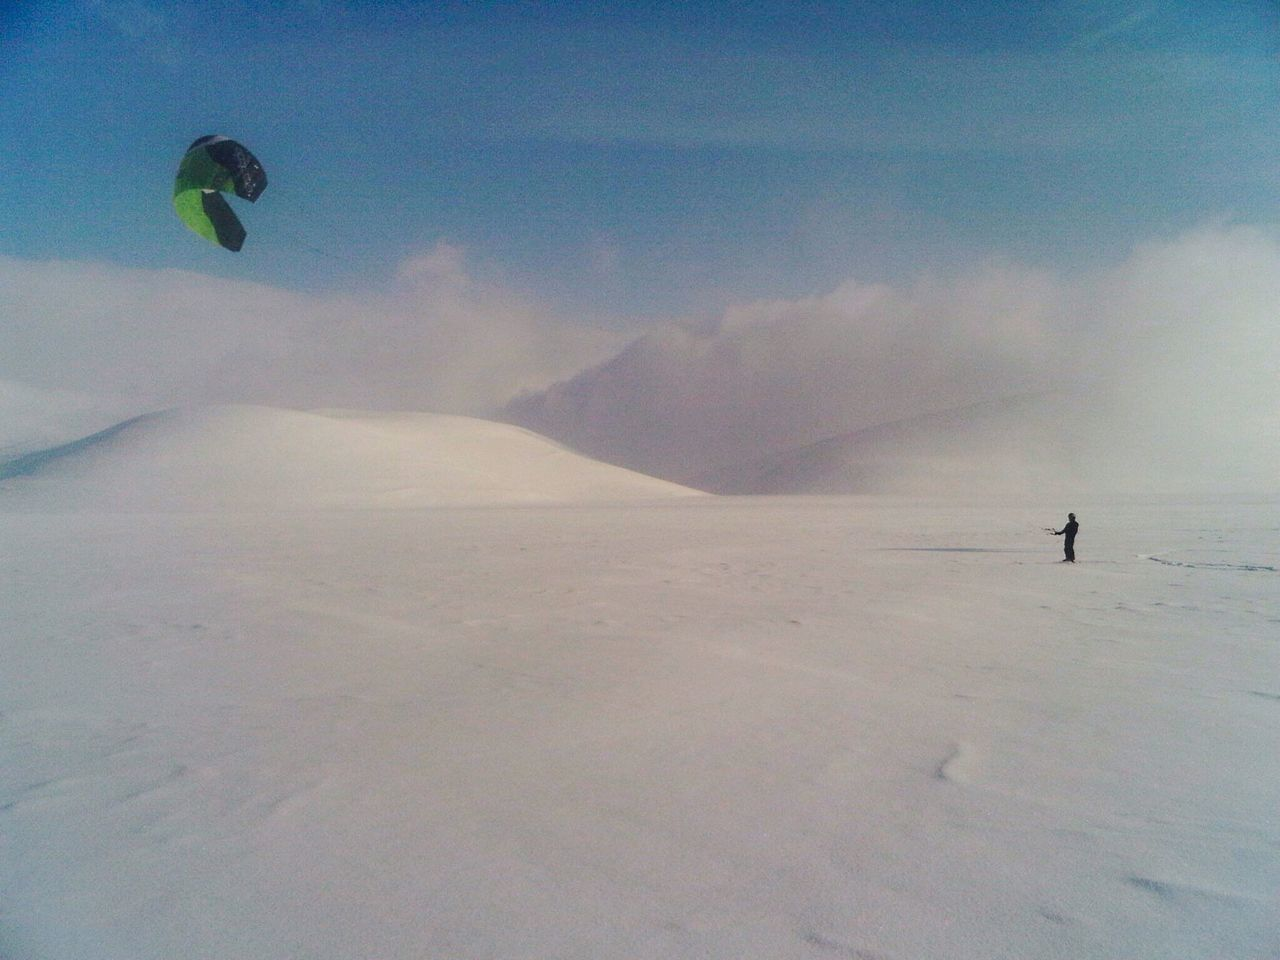 Adventure Winter Leisure Activity Cold Temperature Snow Unrecognizable Person Extreme Sports White Snowcapped Mountain Extreme Weather Wind Power Wind Real People Lifestyles Parachute Nature One Person Outdoors Day Landscape Sky Scenics Paragliding Cloud - Sky Beauty In Nature